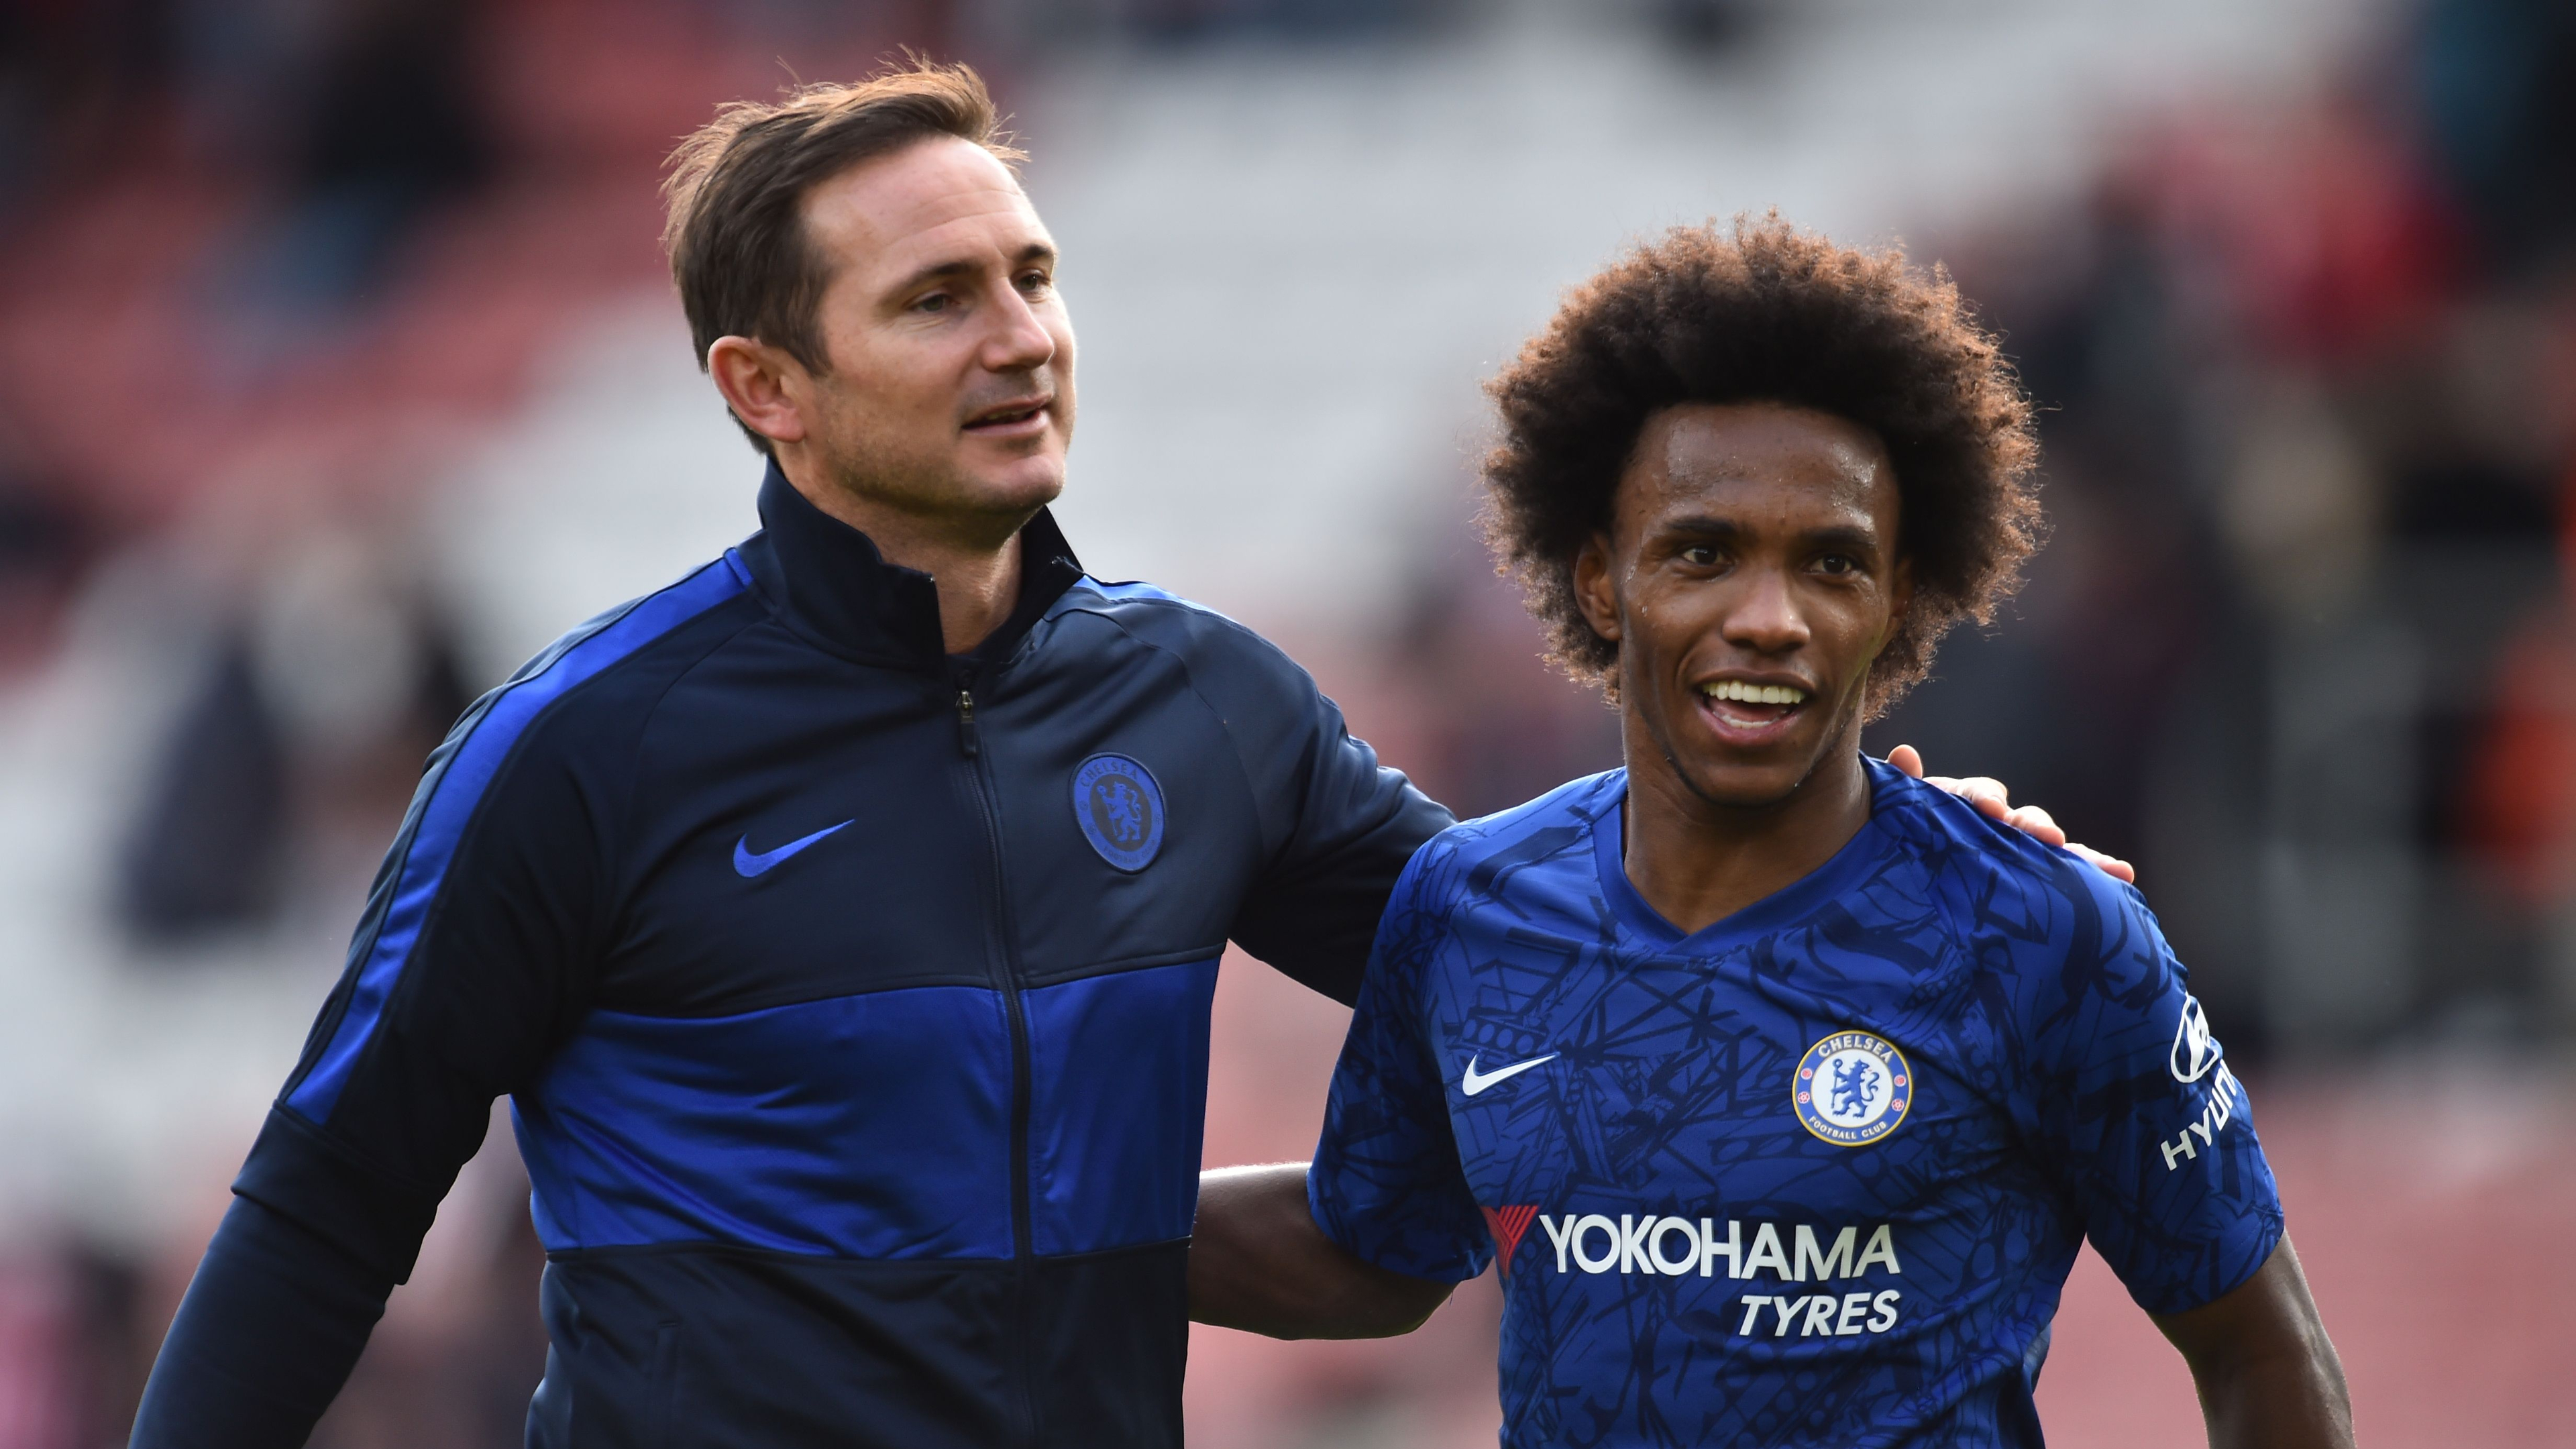 Jose Mourinho has Chelsea 'worry' as Frank Lampard's side await Man City